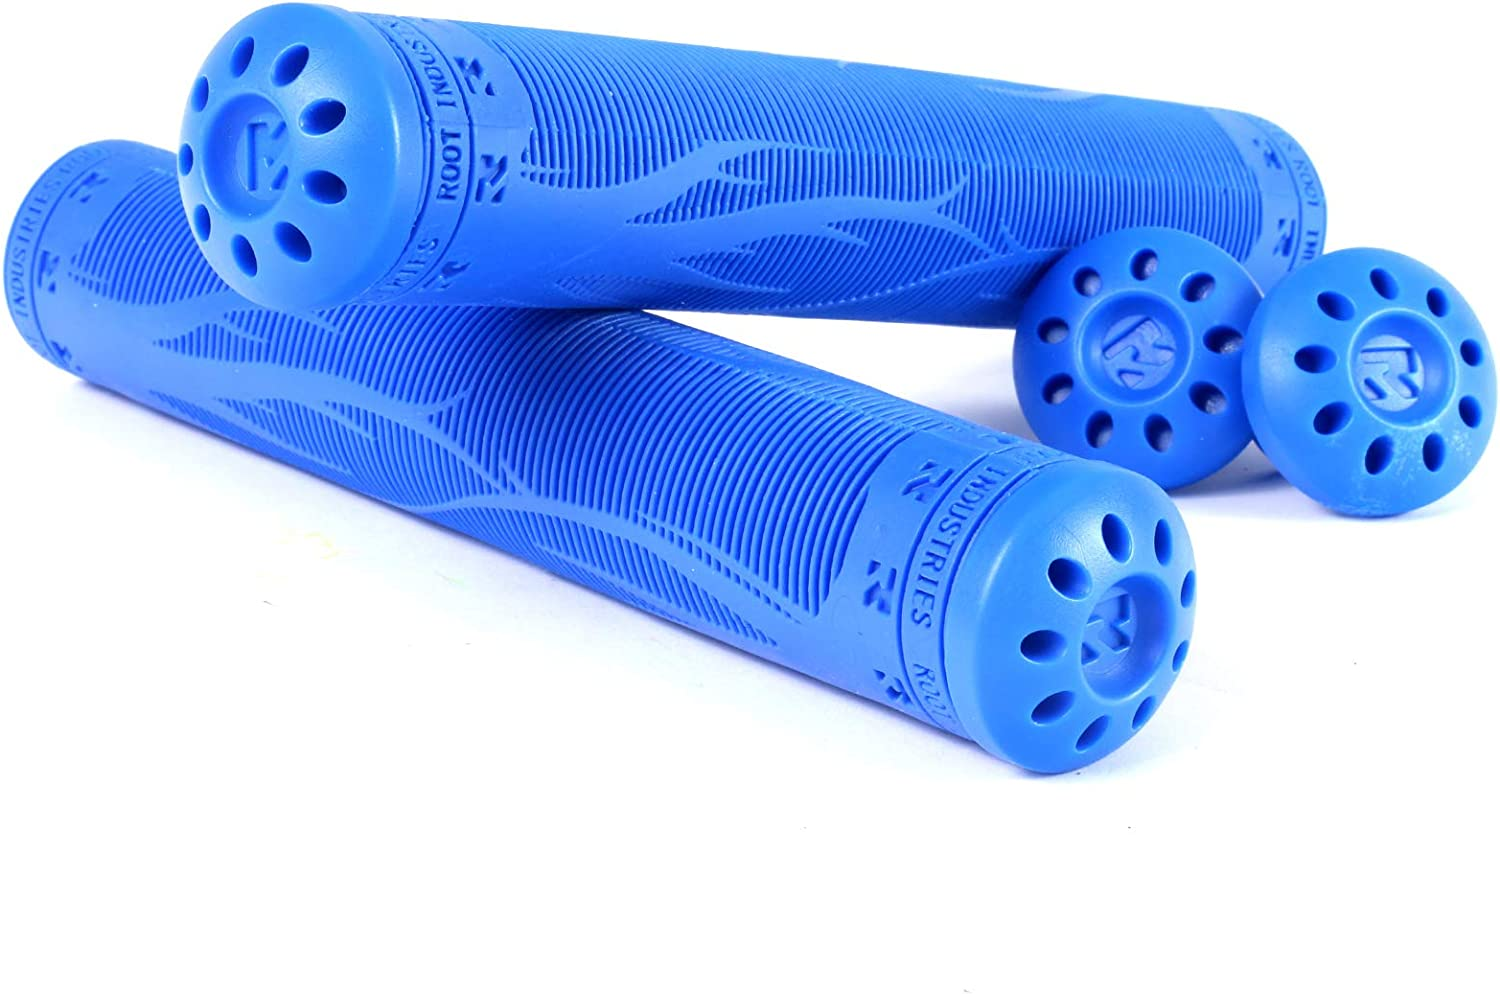 Tons of Colors R2 Pro Scooter Grips BMX Bar Ends Included Fits Stunt Scooters BMX Grips Unique Blended Style Mountain Bike BMX Accessories Bike Handlebar Grips Soft and Comfortable